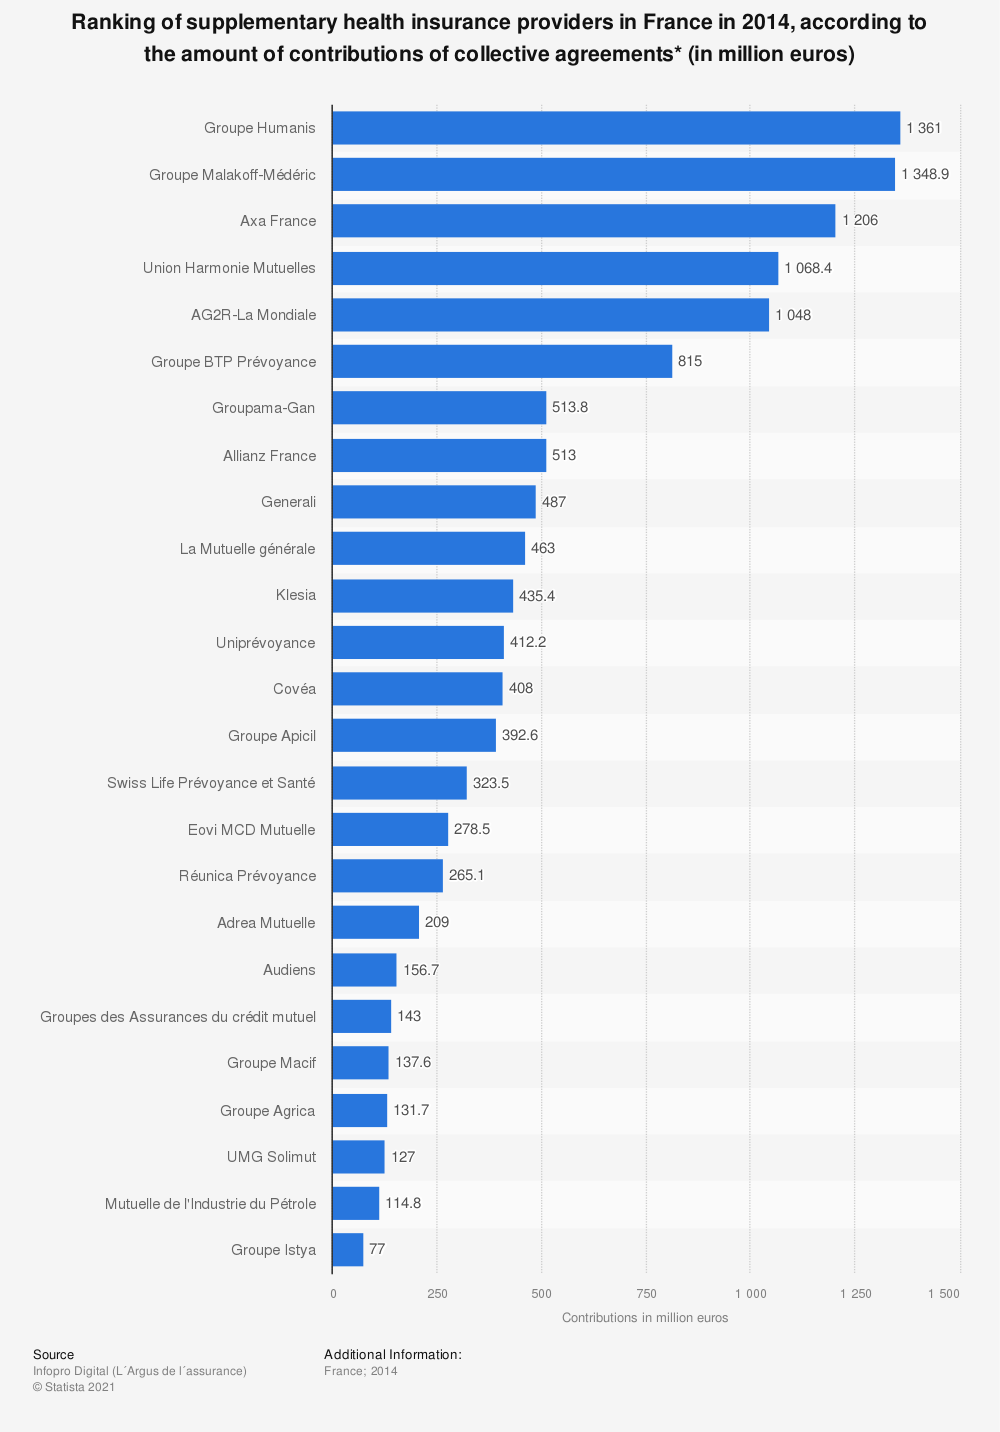 Statistic: Ranking of supplementary health insurance providers in France in 2014, according to the amount of contributions of collective agreements* (in million euros) | Statista